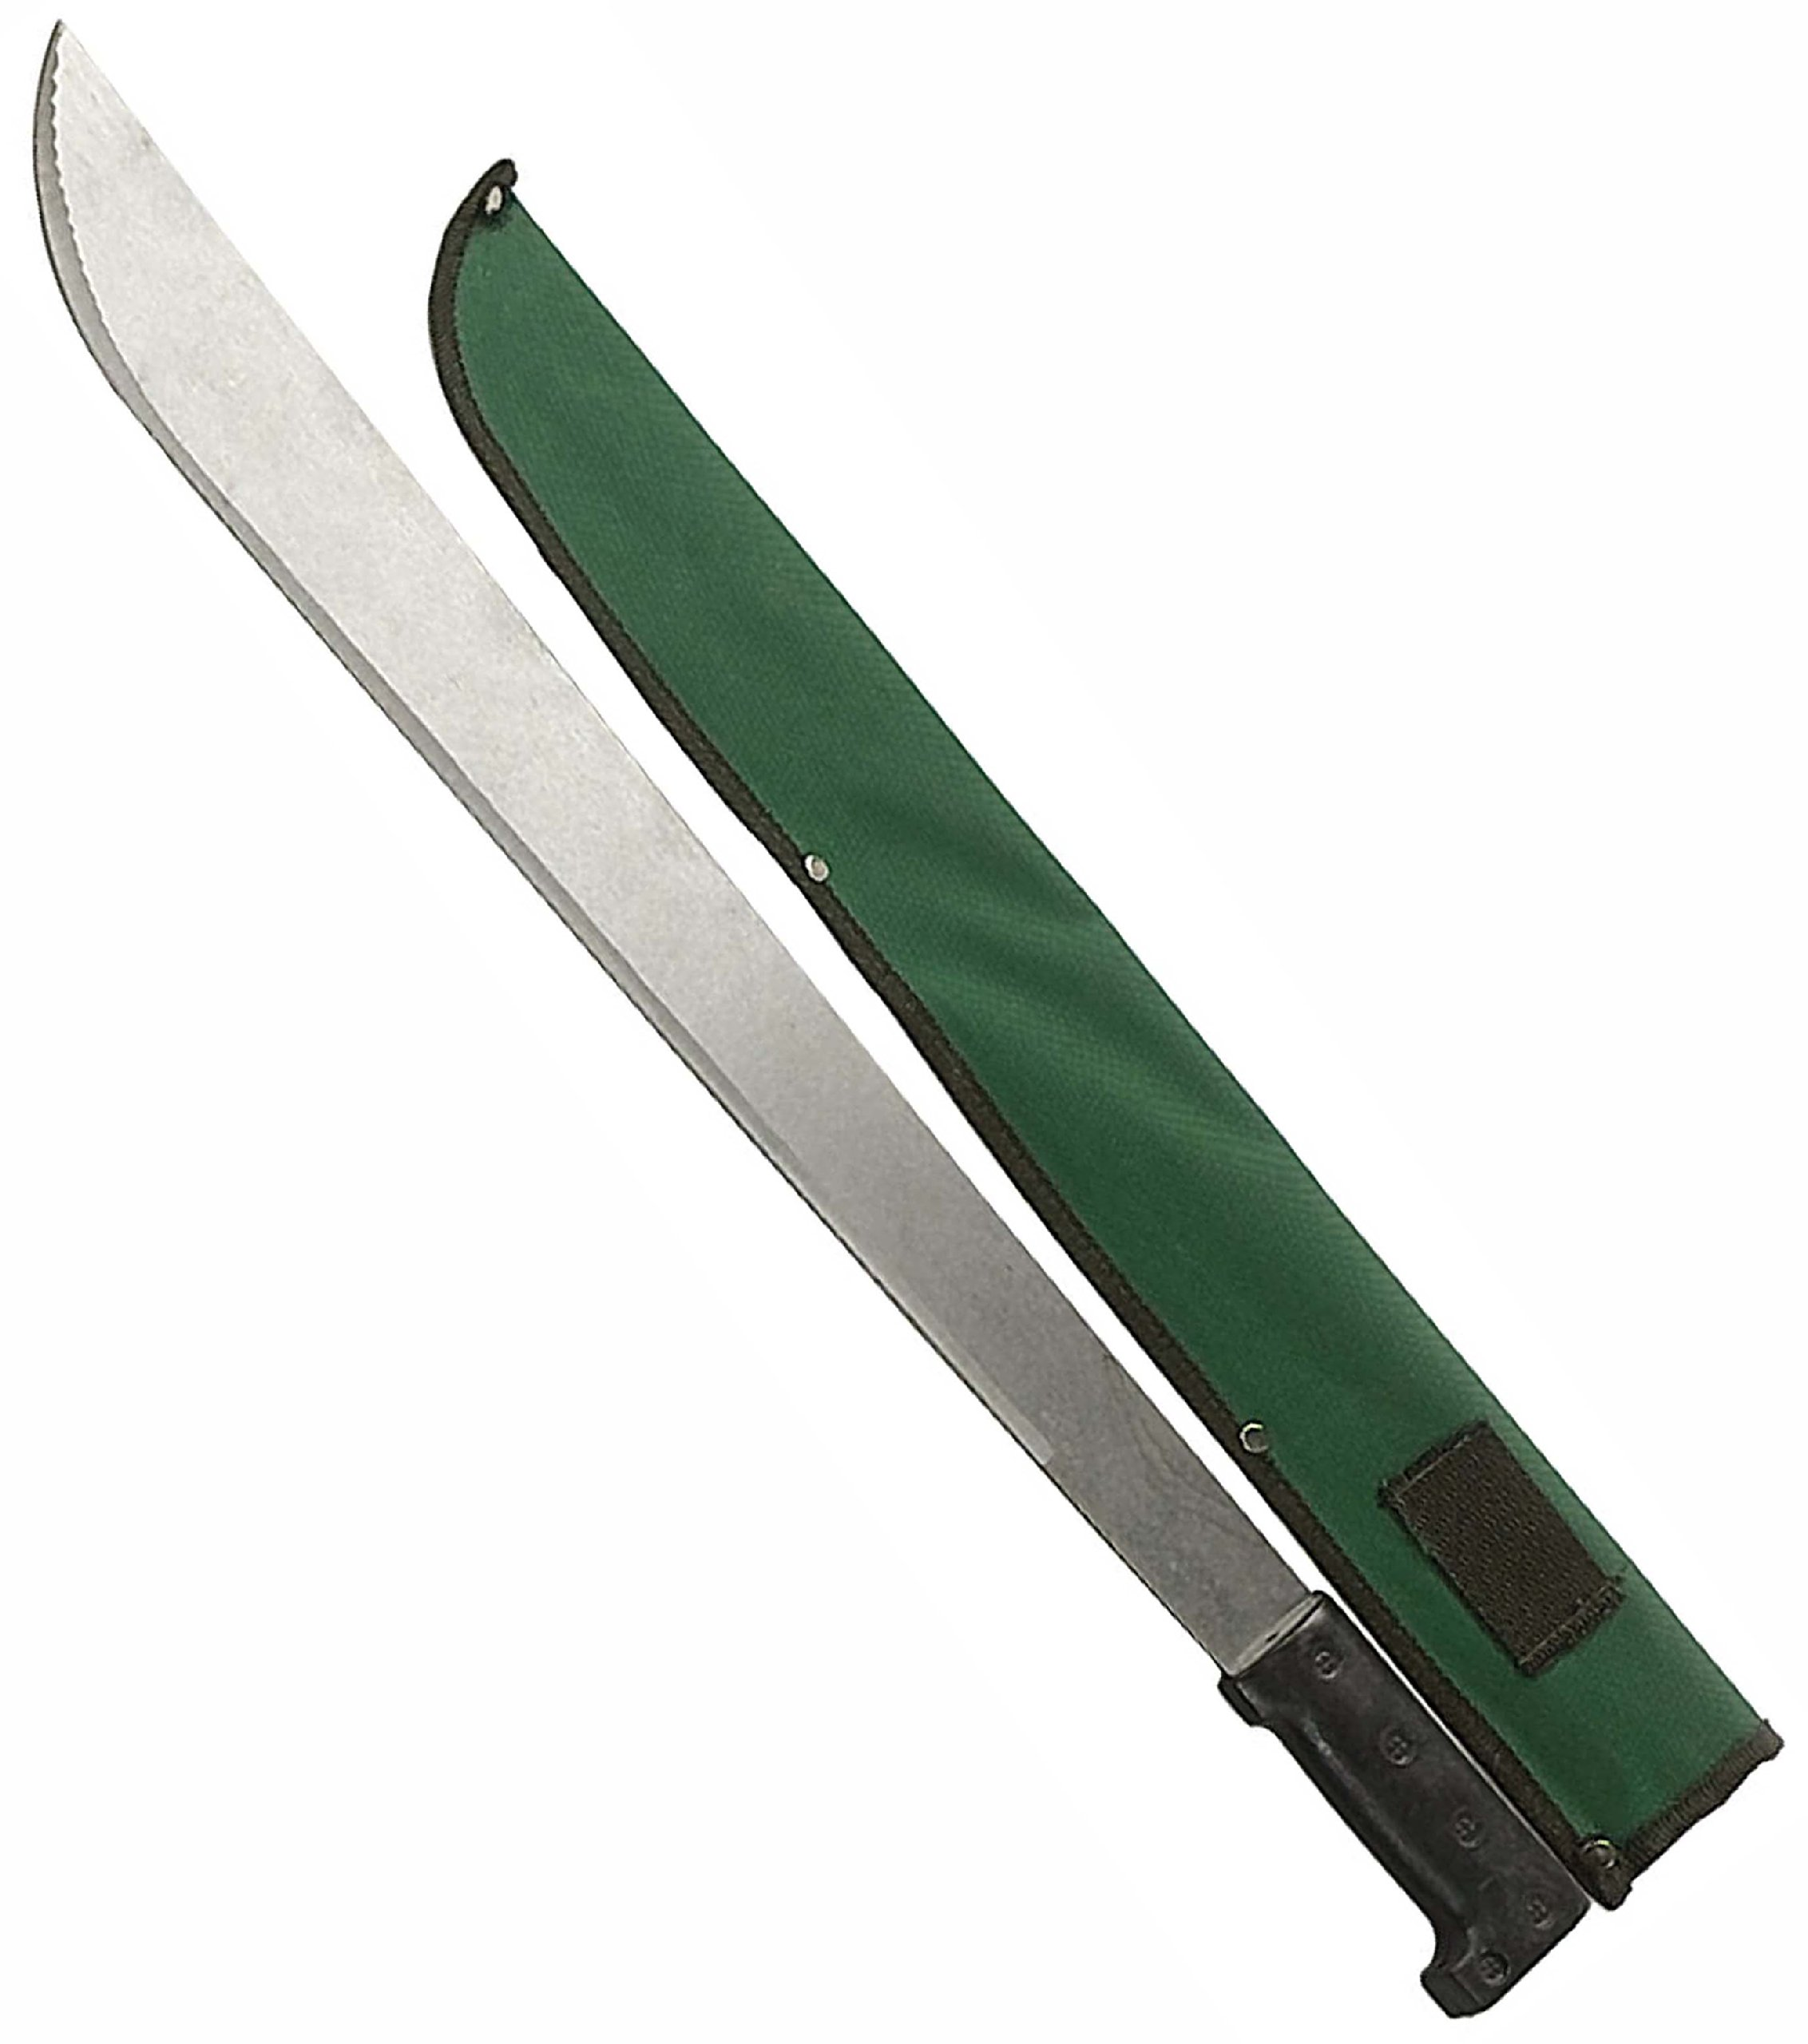 ToolUSA Steel Machete With Storage Pouch And Plastic Handle - 22 Inches Long: G-12309